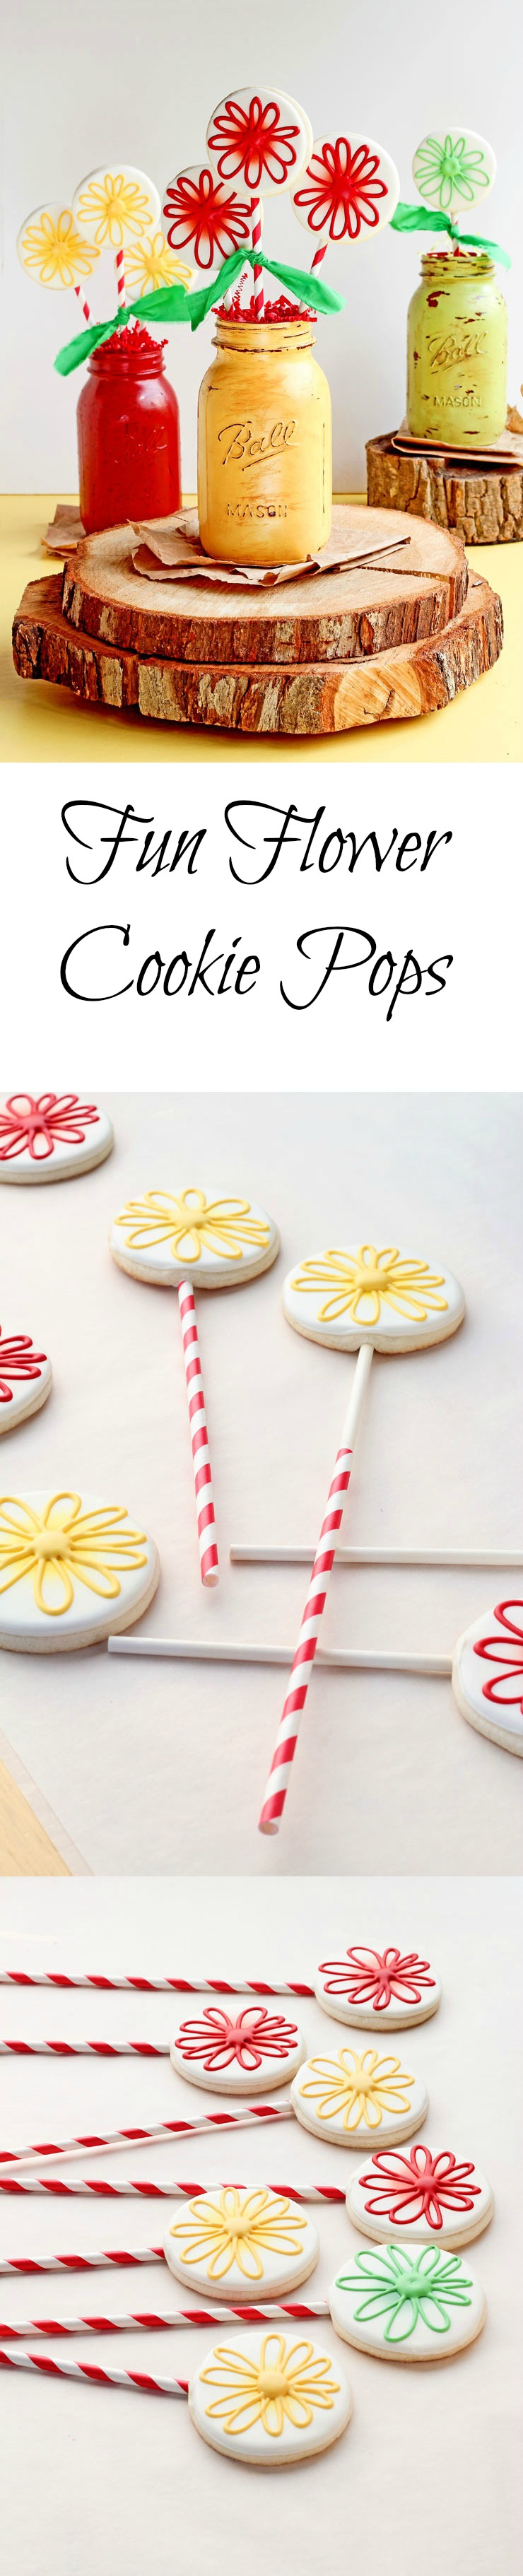 Simple Fun Flower Cookie Pops www.thebearfootbaker.com